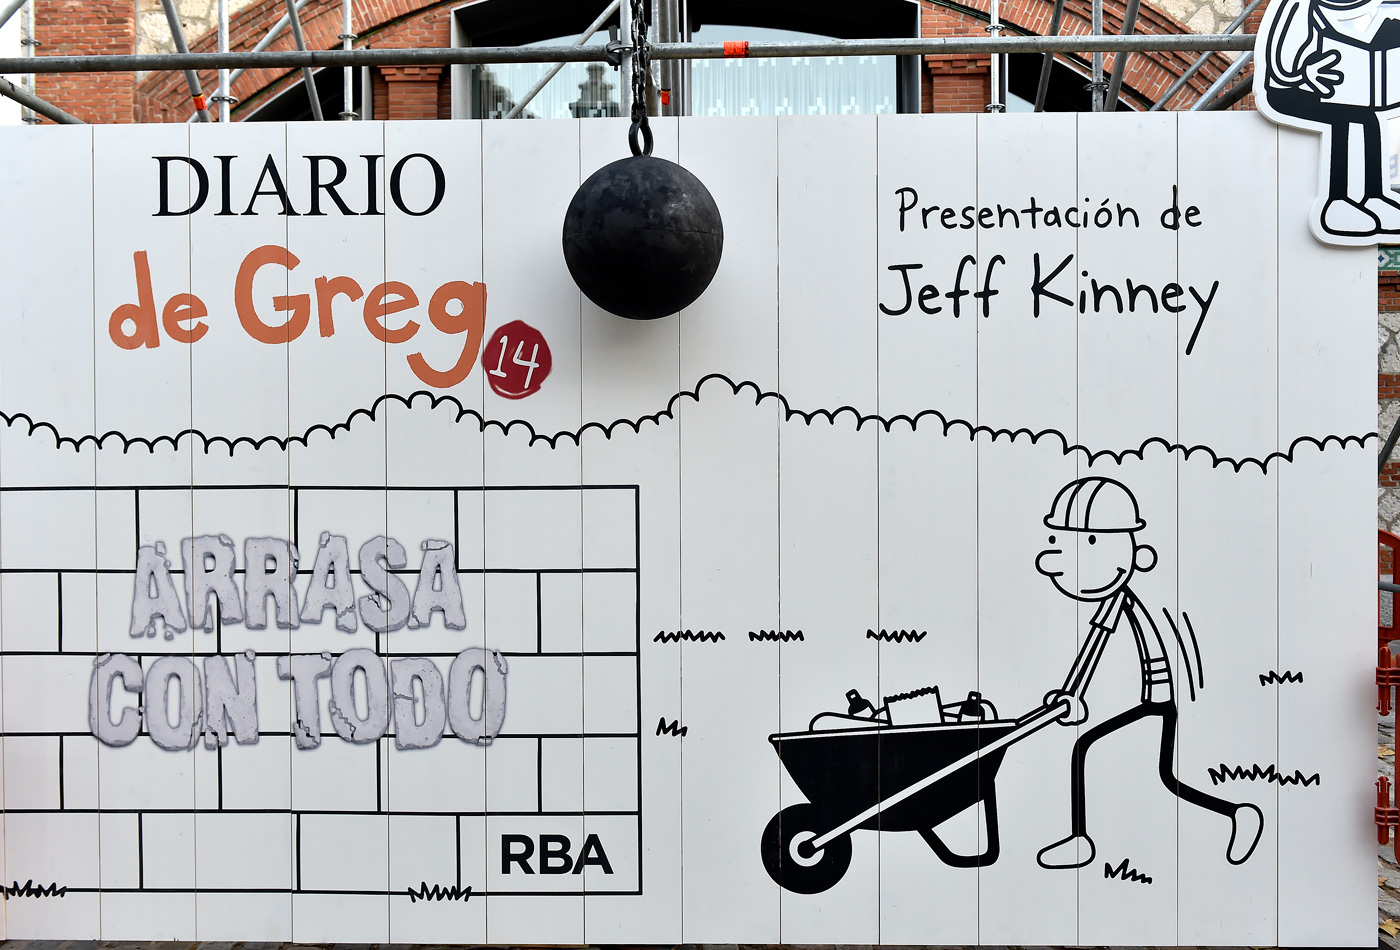 diario-greg-jeff-kinney-madrid-rba-casadellector